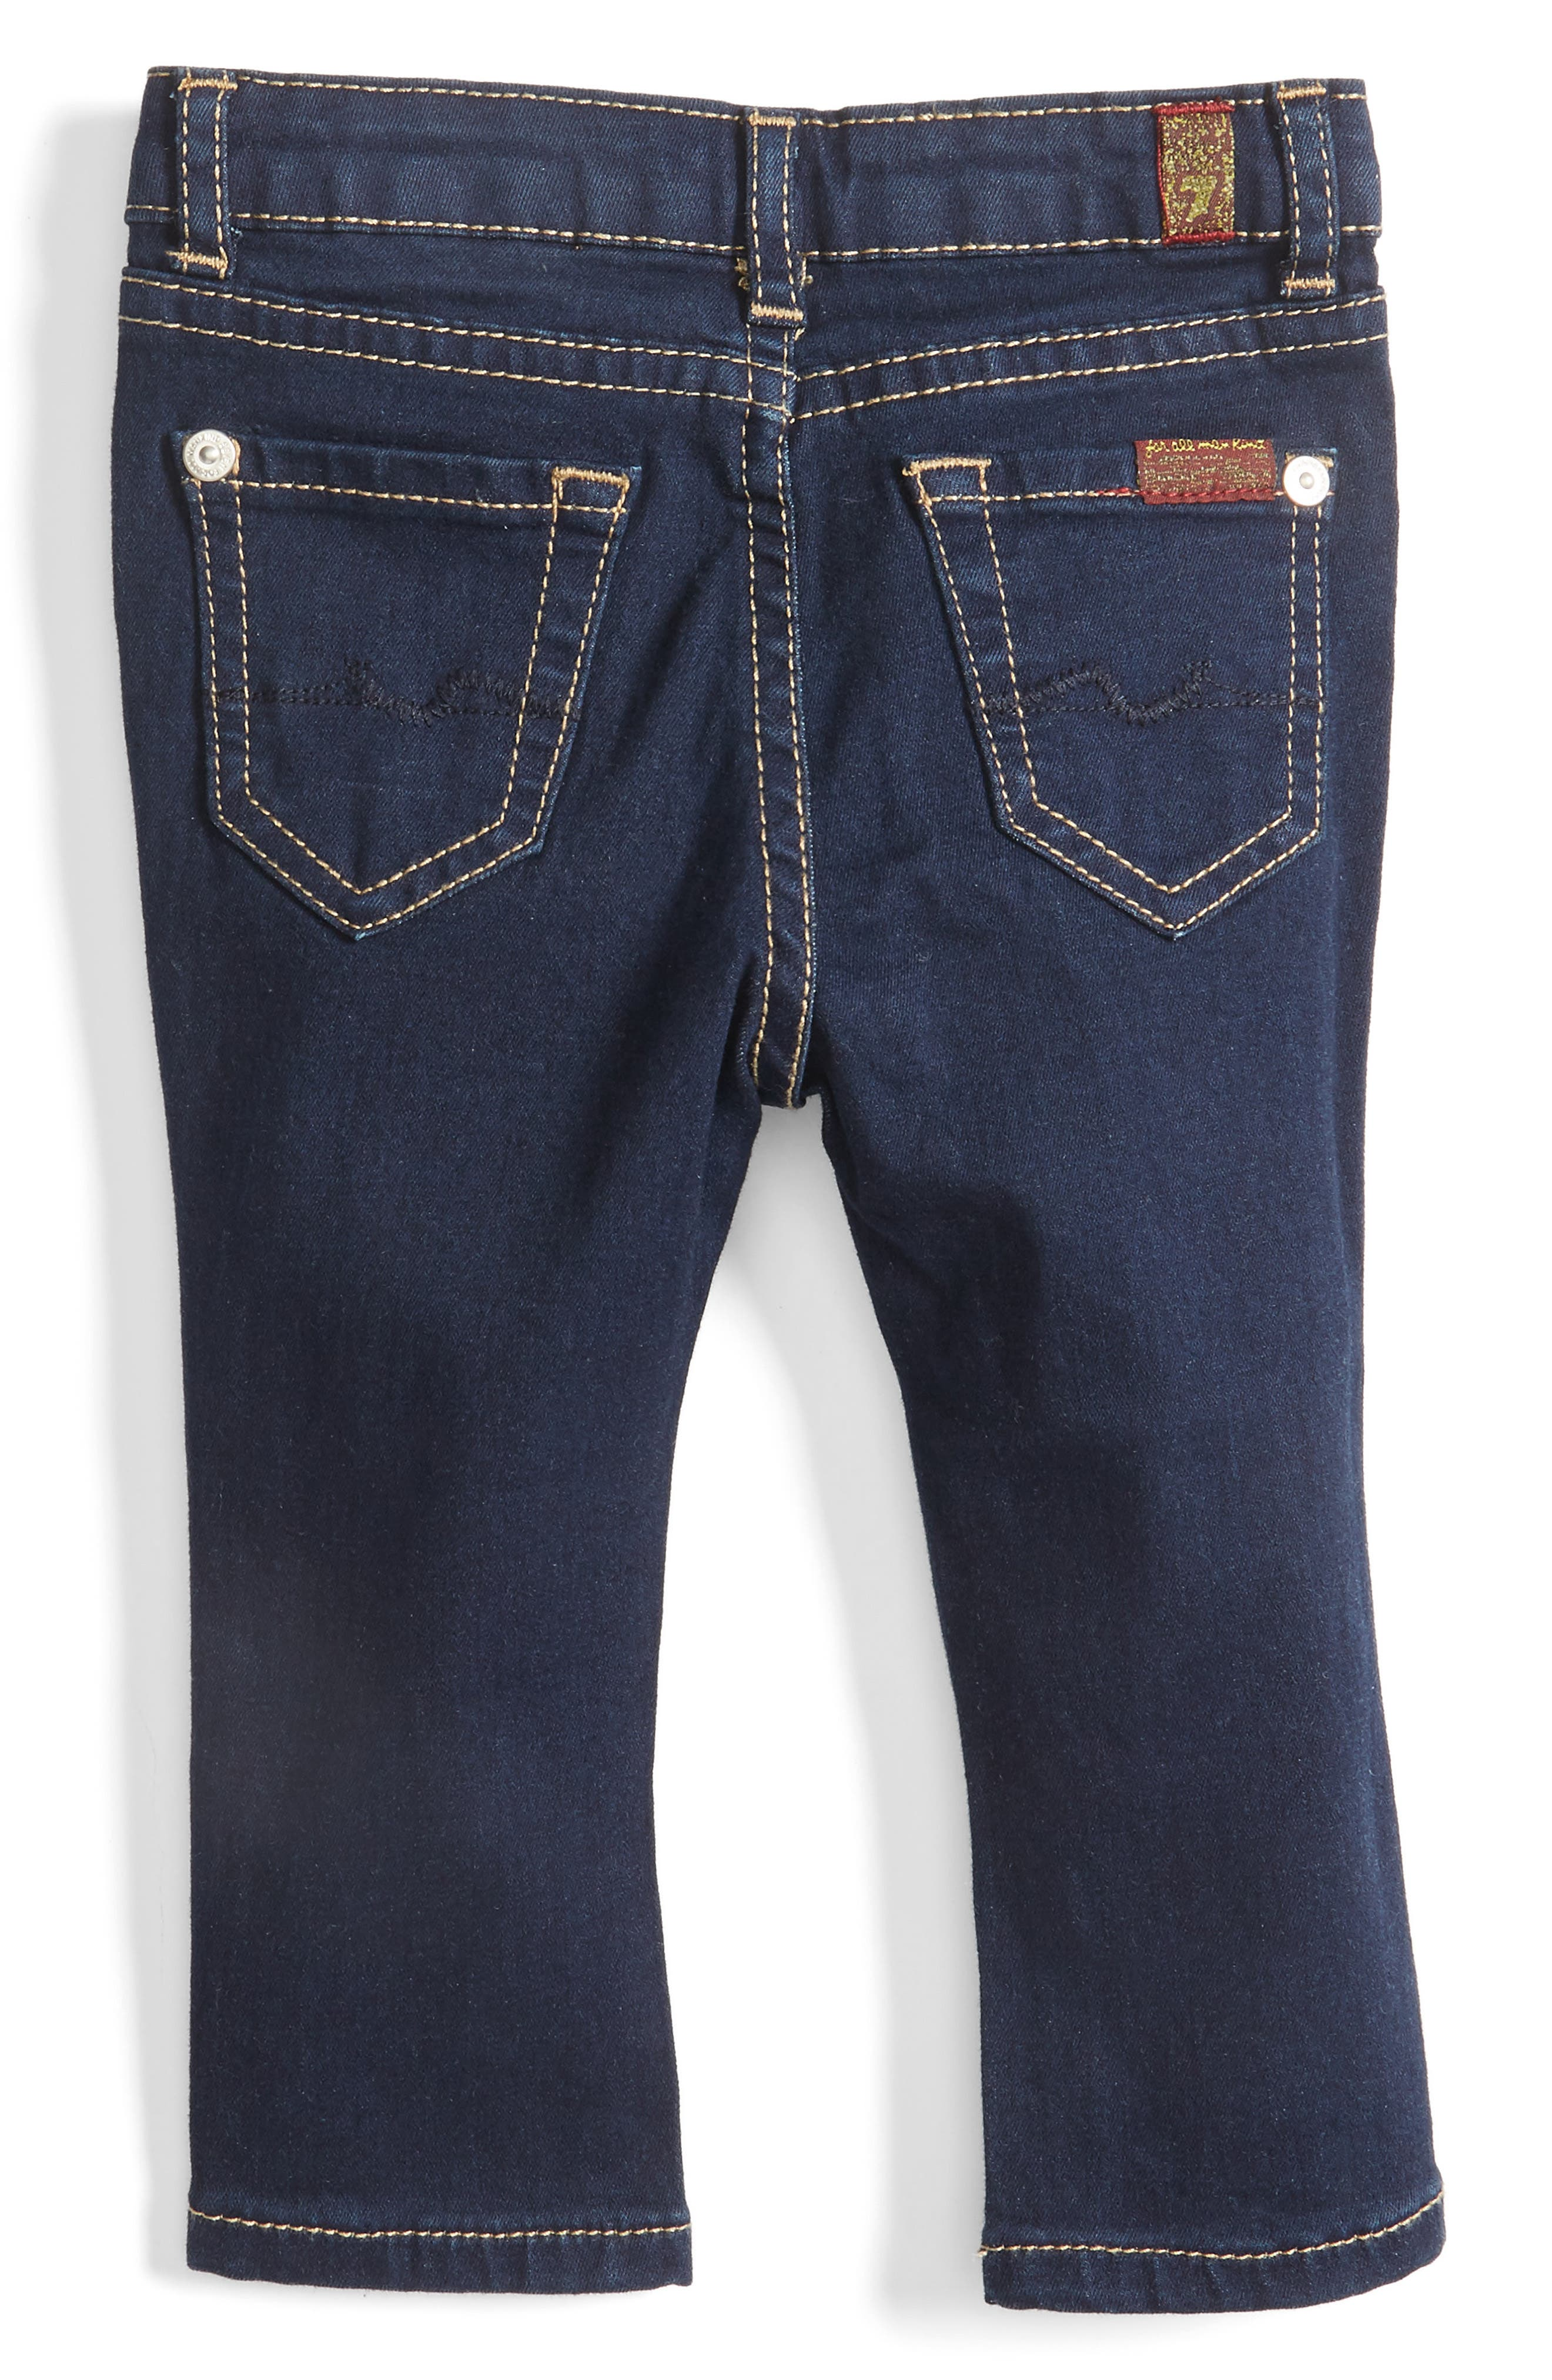 Skinny Fit Jeans,                         Main,                         color, 407